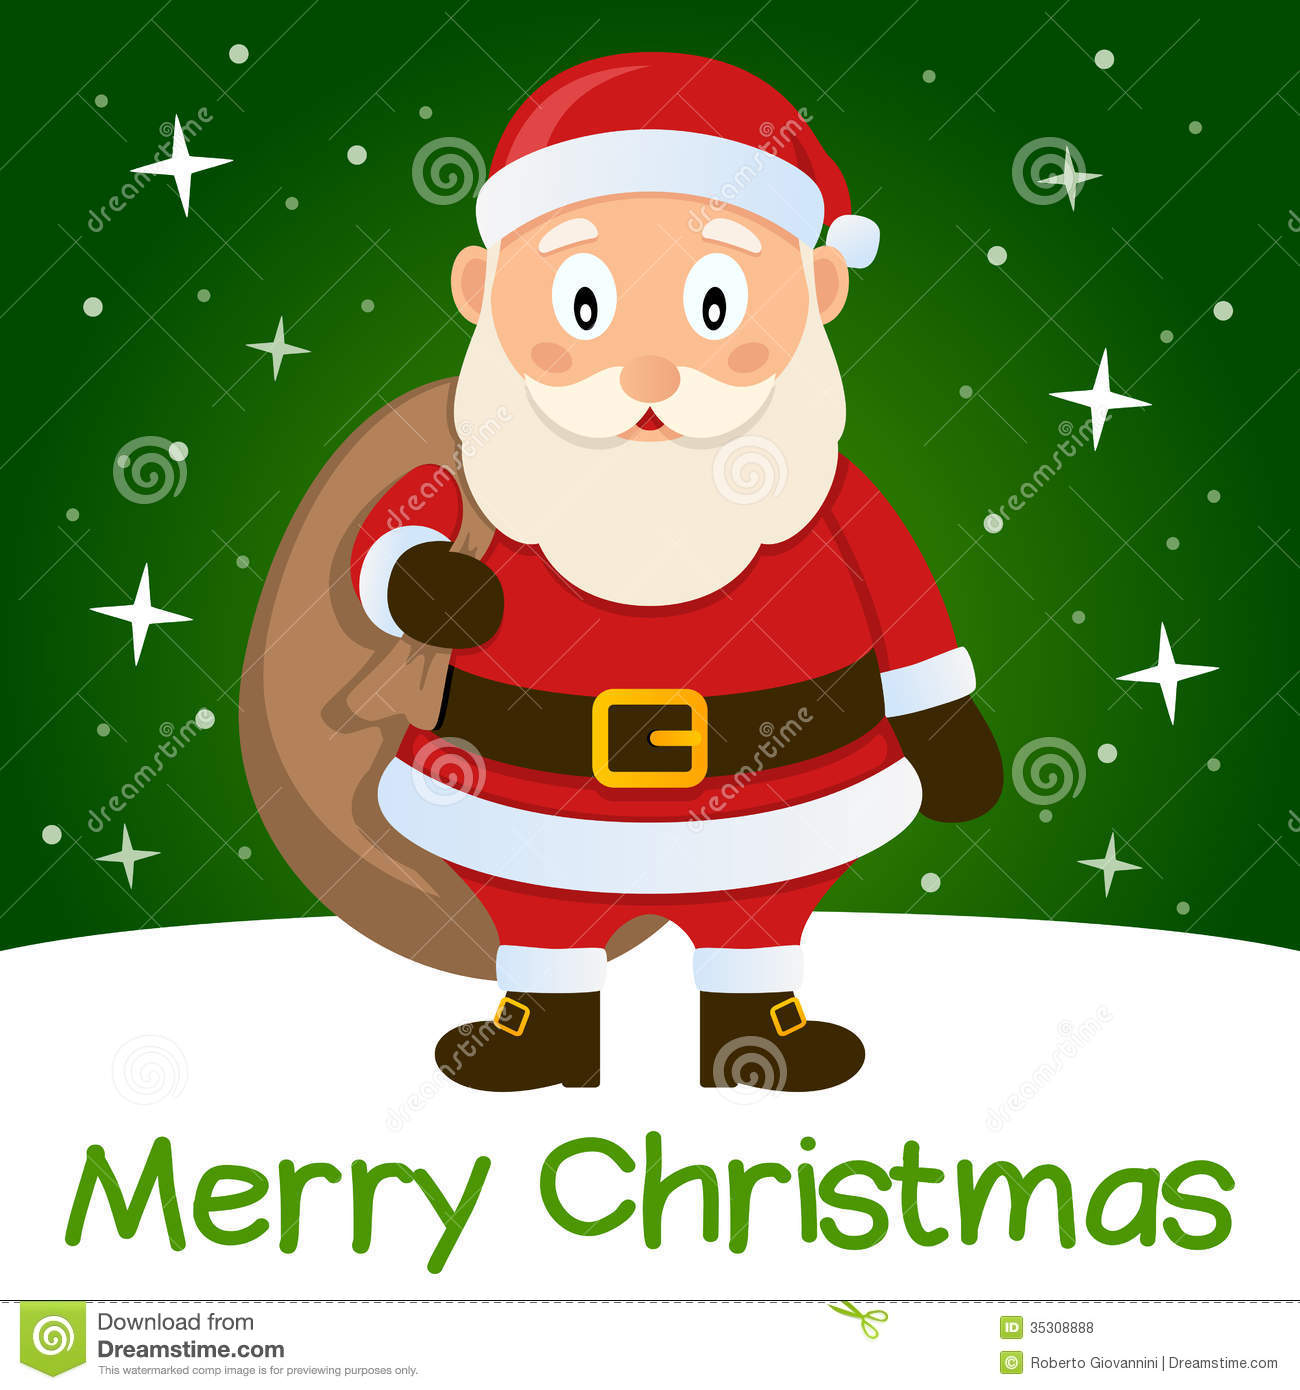 Green Christmas Card Santa Claus Royalty Free Stock Photos - Image ...